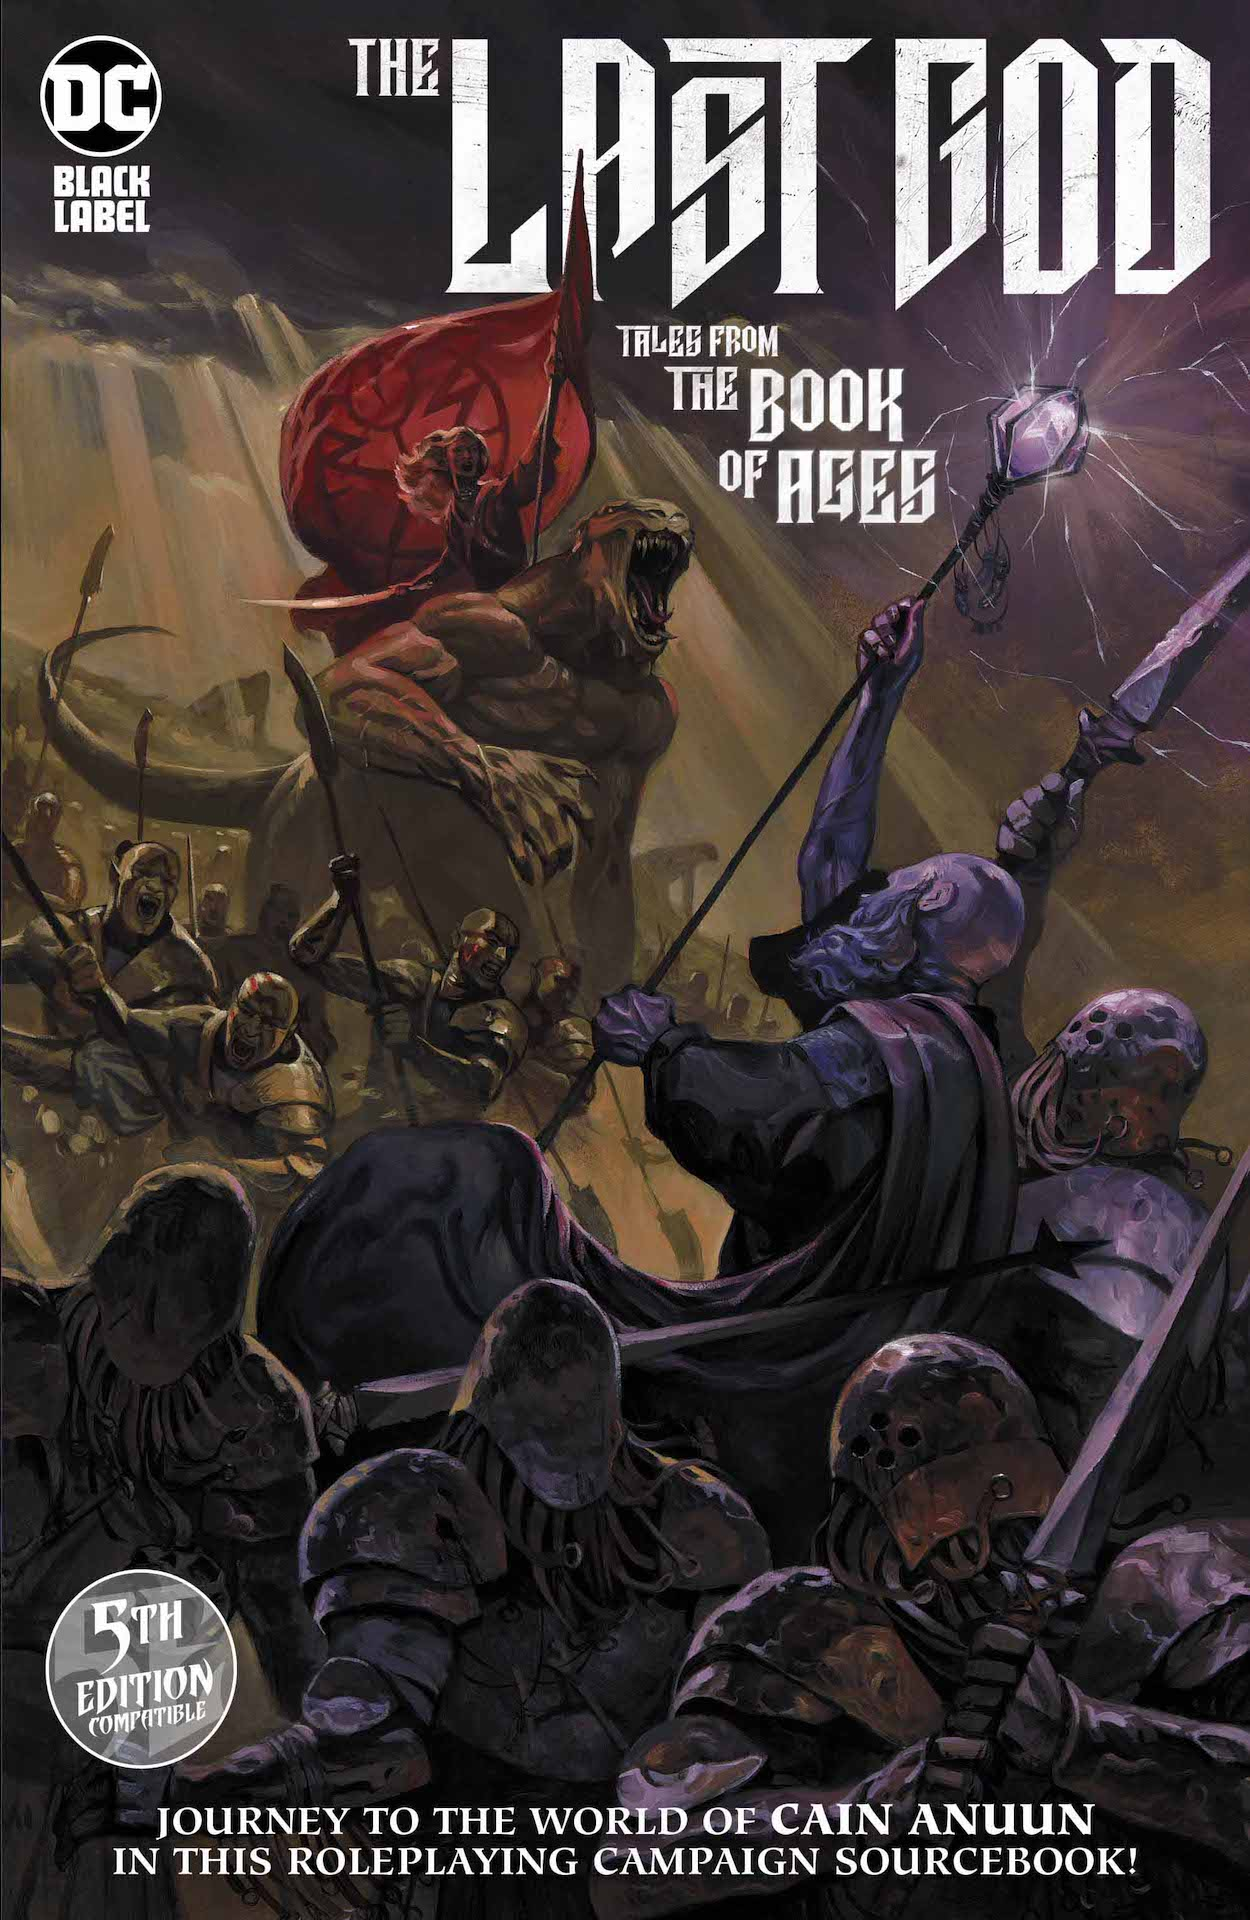 DC Preview: The Last God: Tales from the Book of Ages #1